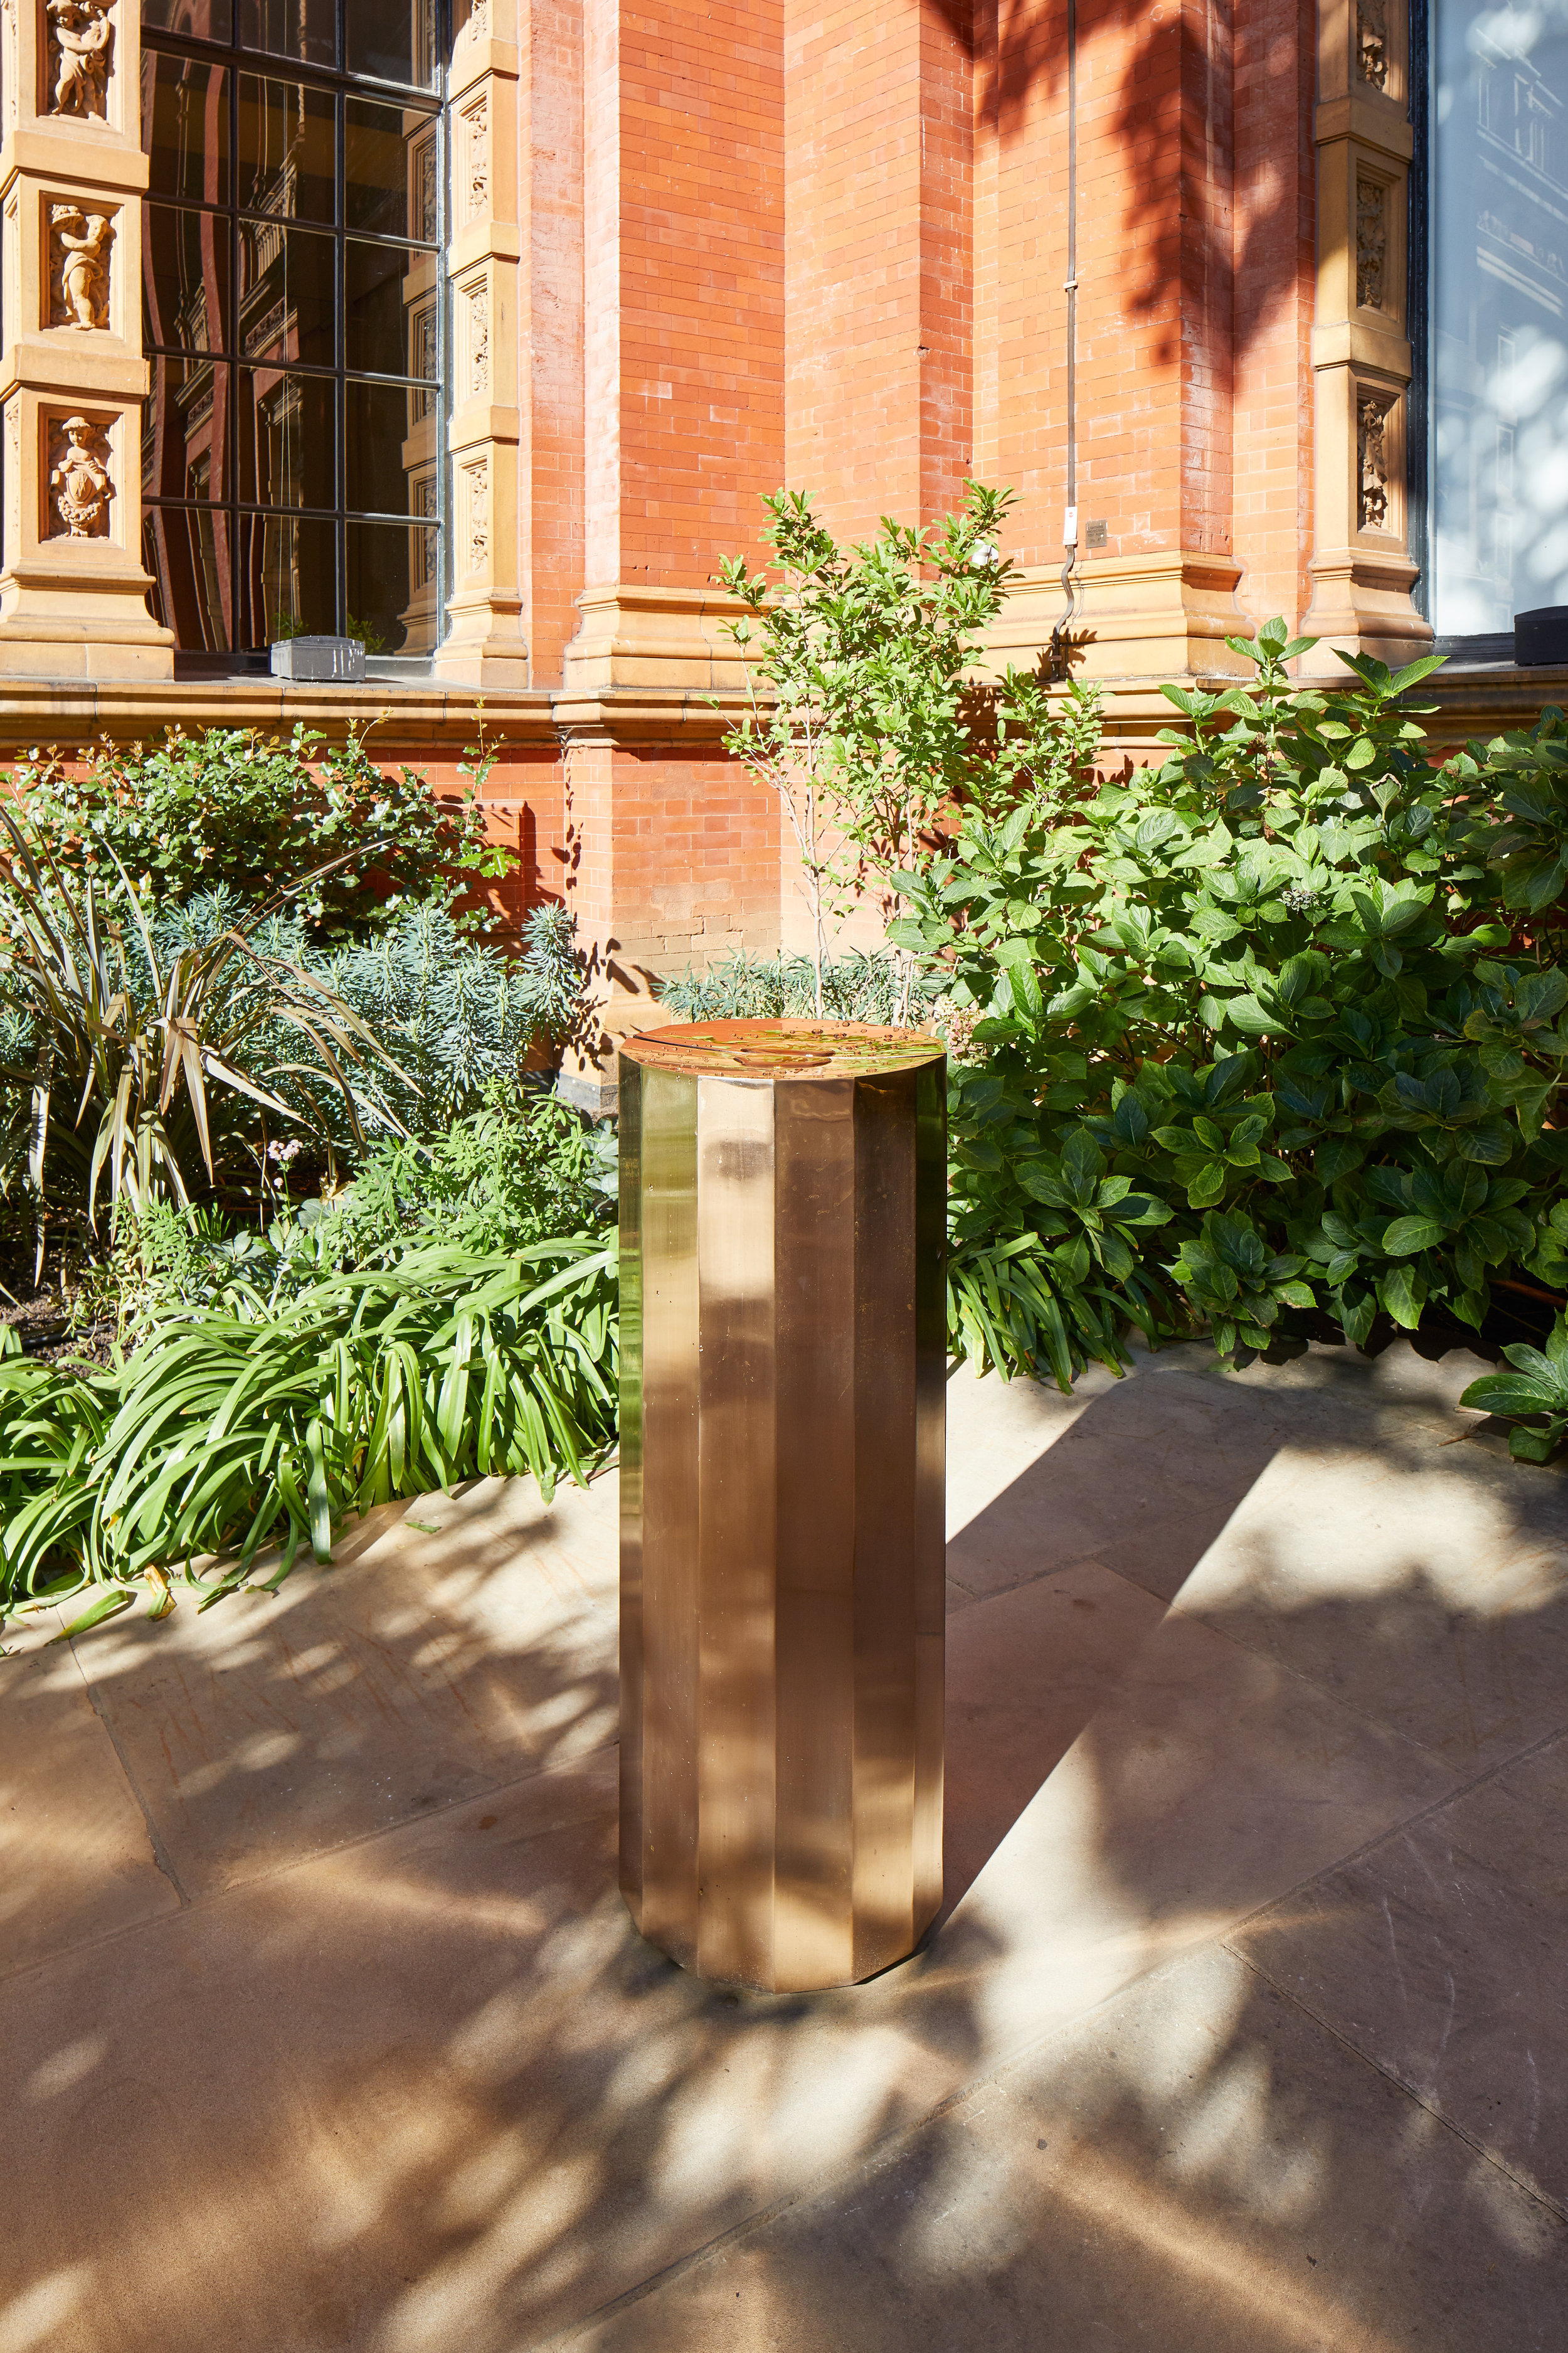 The Fleet, designed by Michael Anastassiades, installed in the John Madejski Garden at the V&A.